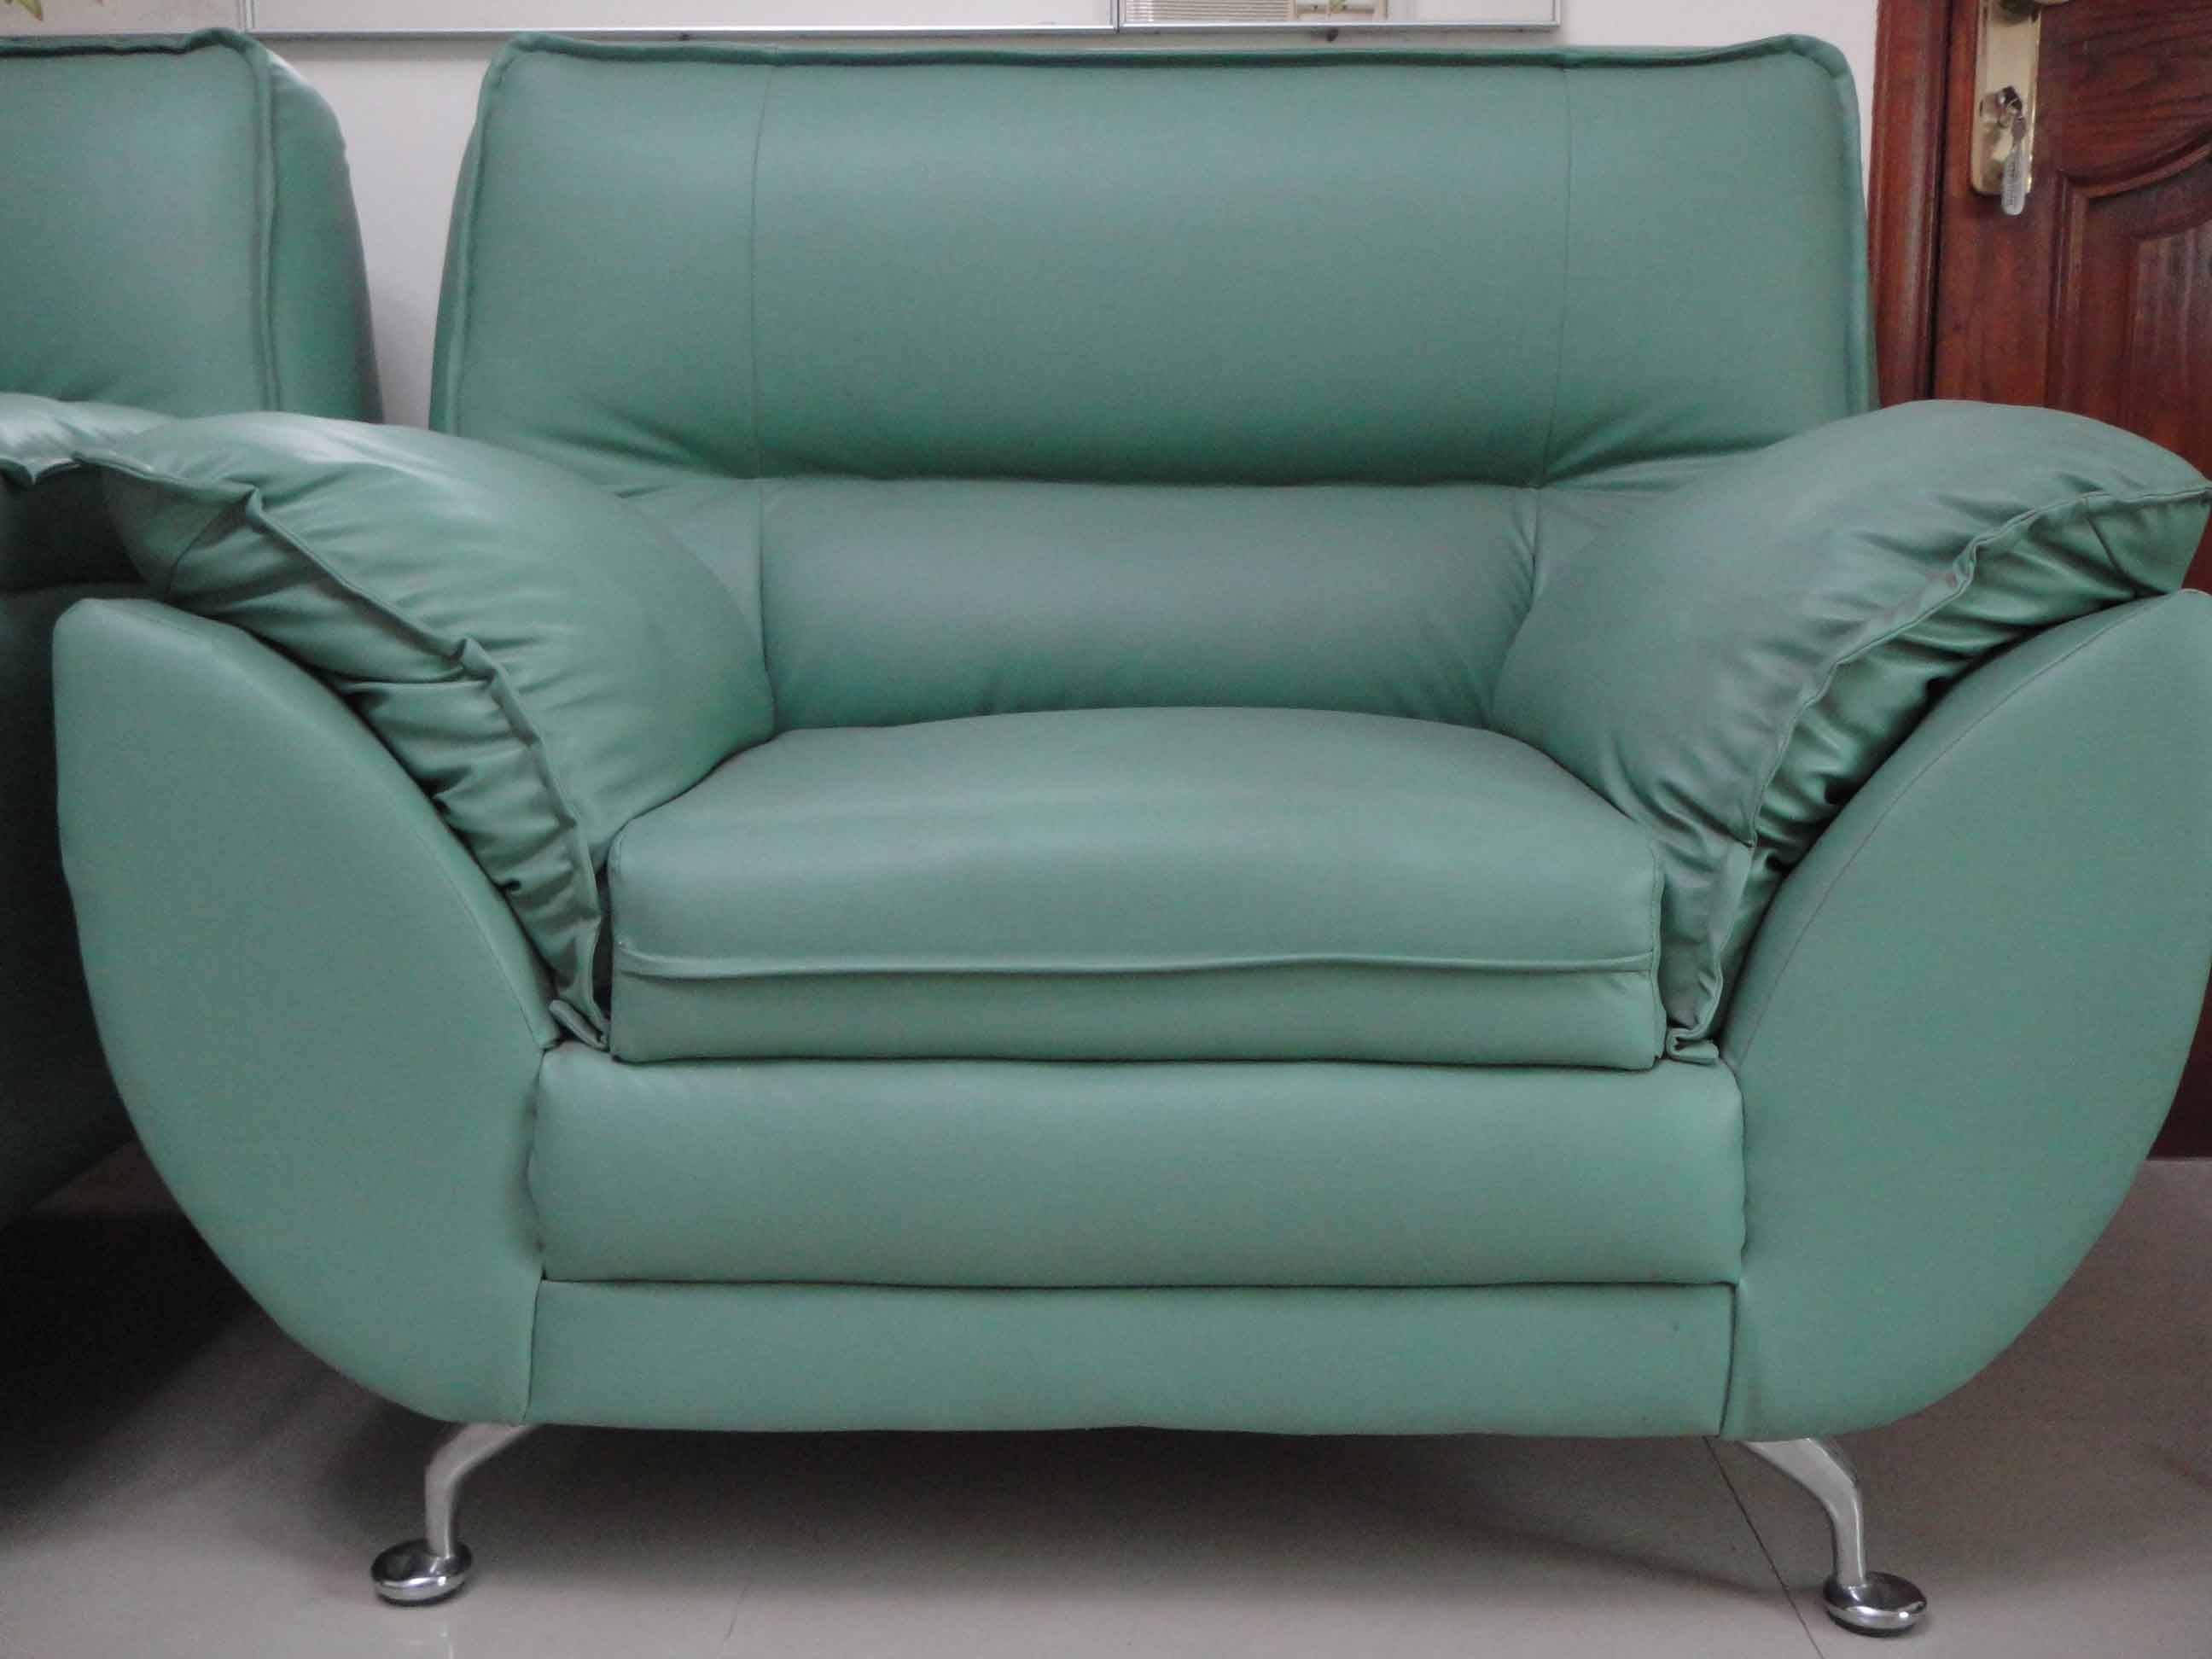 Preferred Unusual Sofas With Regard To Furniture Interesting Chic Green Leather Sofa For Your Living Room (View 17 of 20)